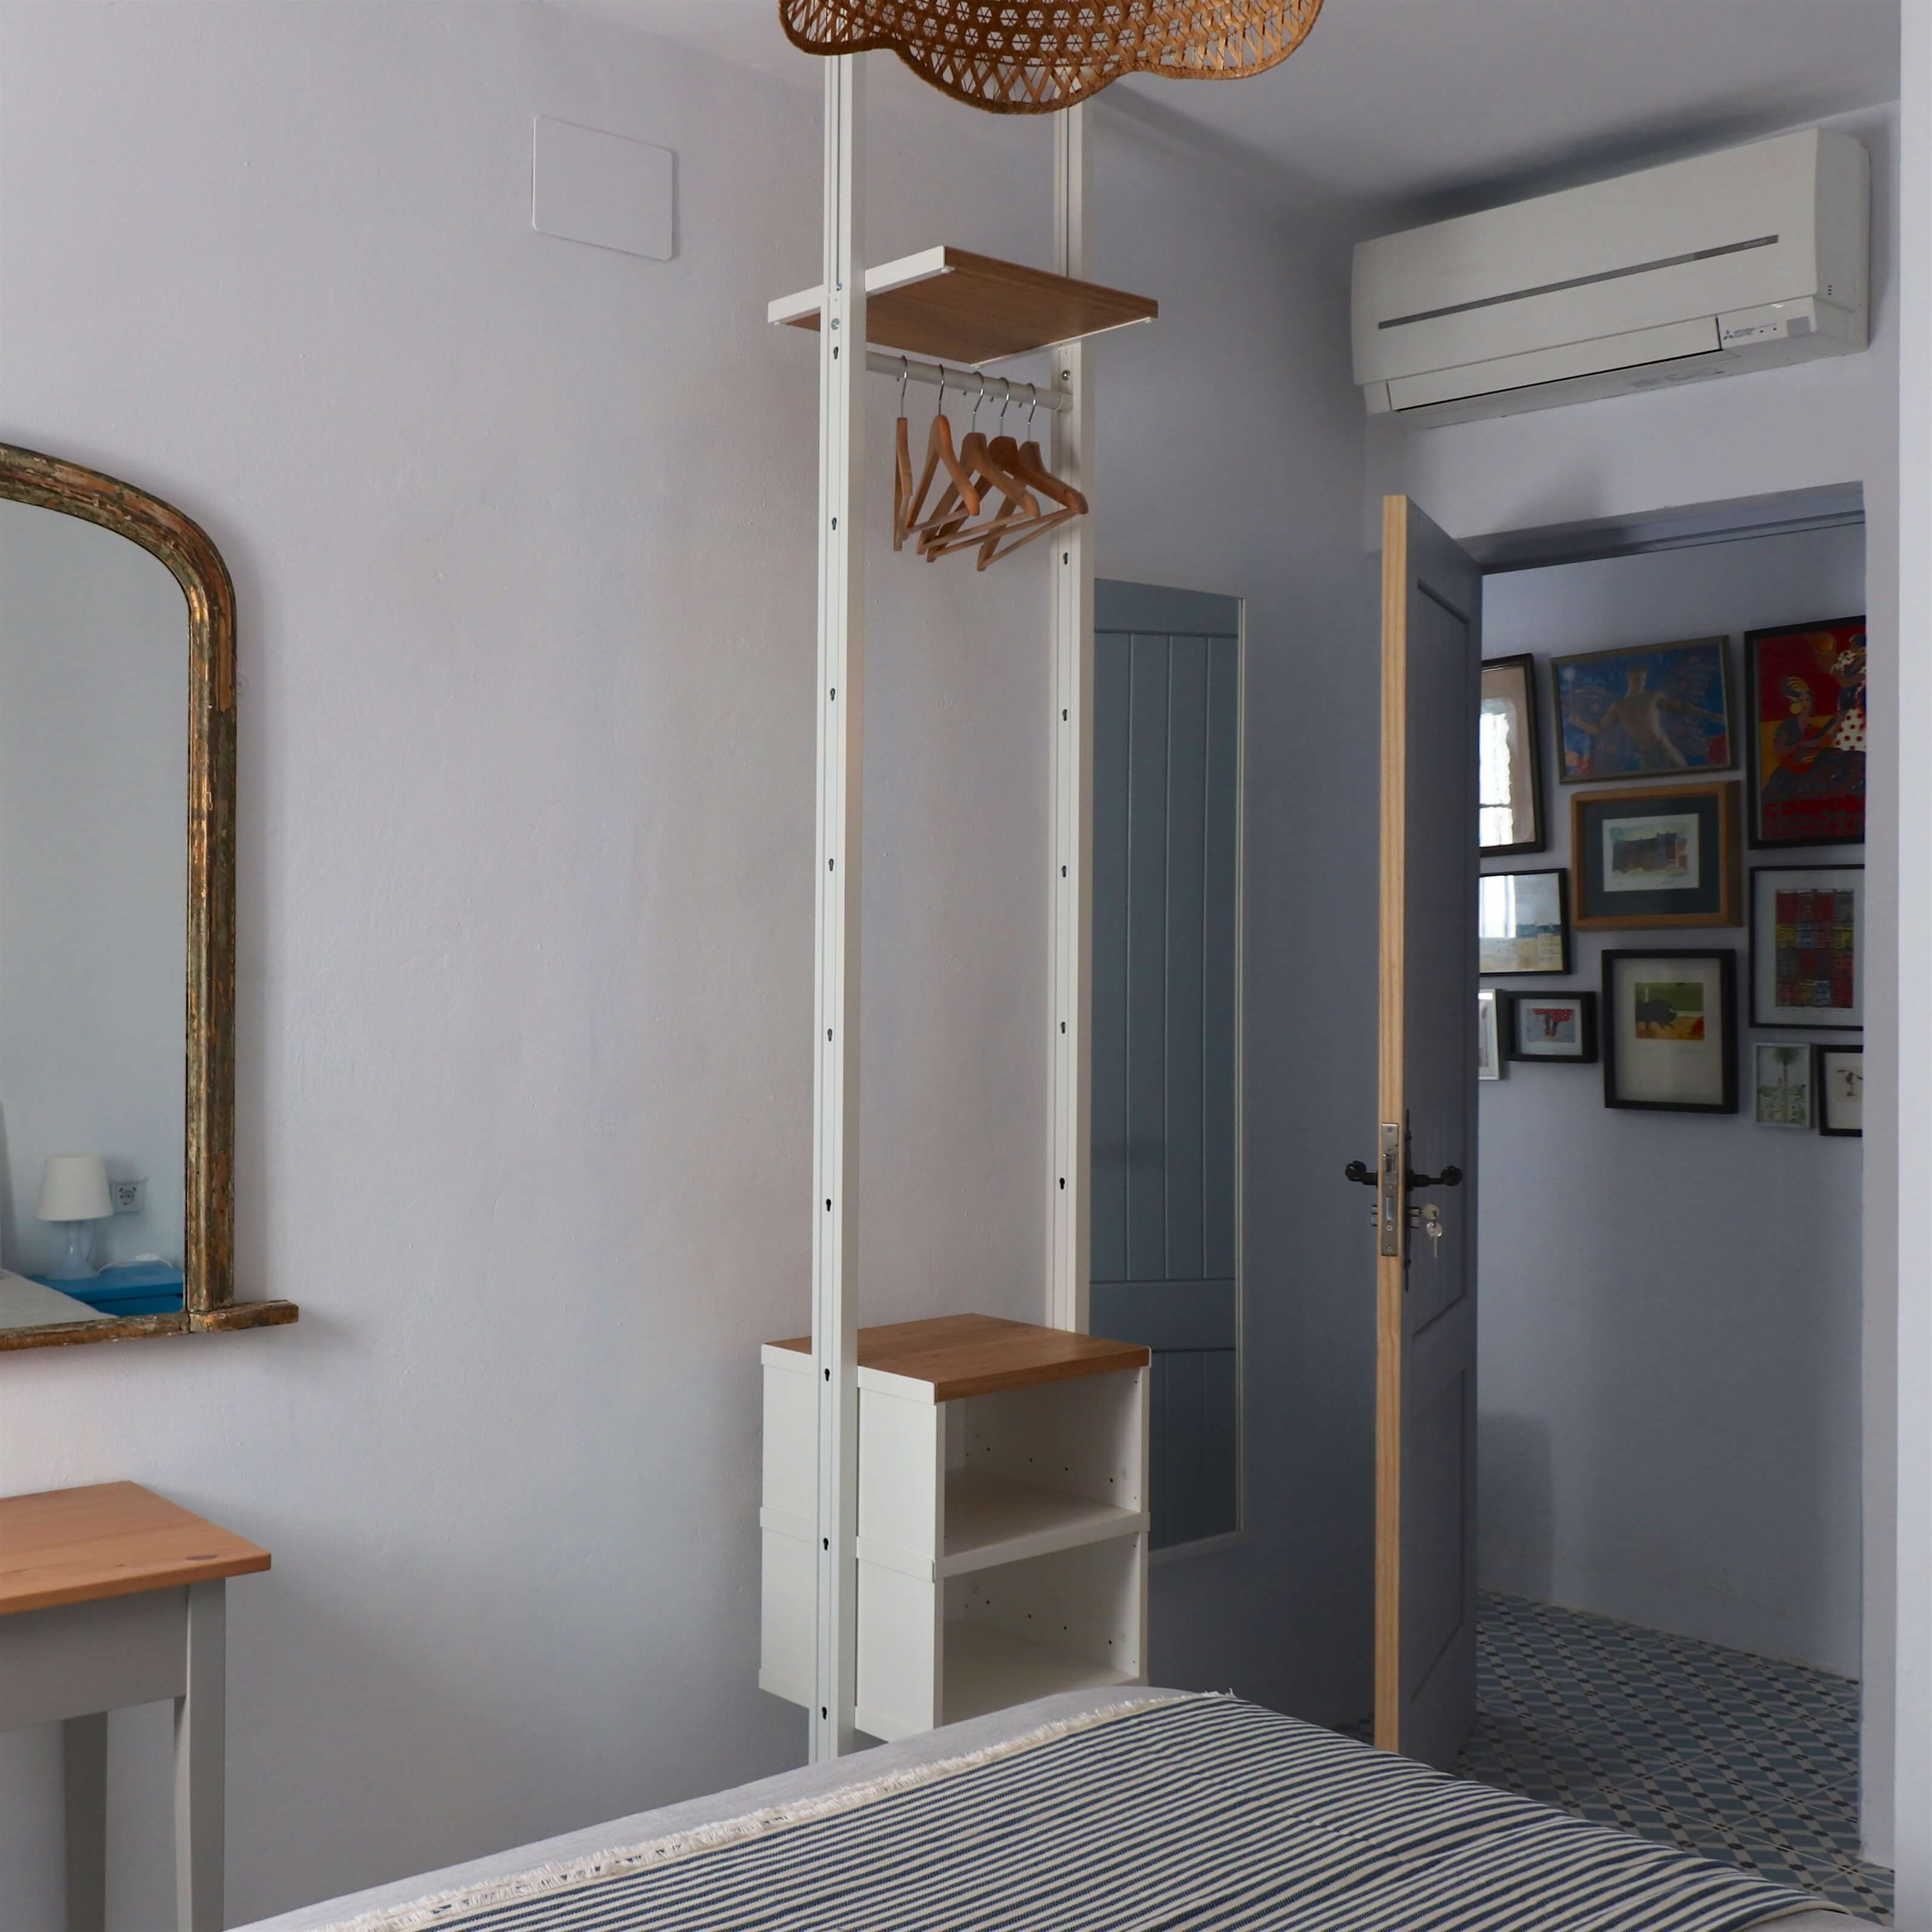 Room 4 Dressing Table and Clothes Rail